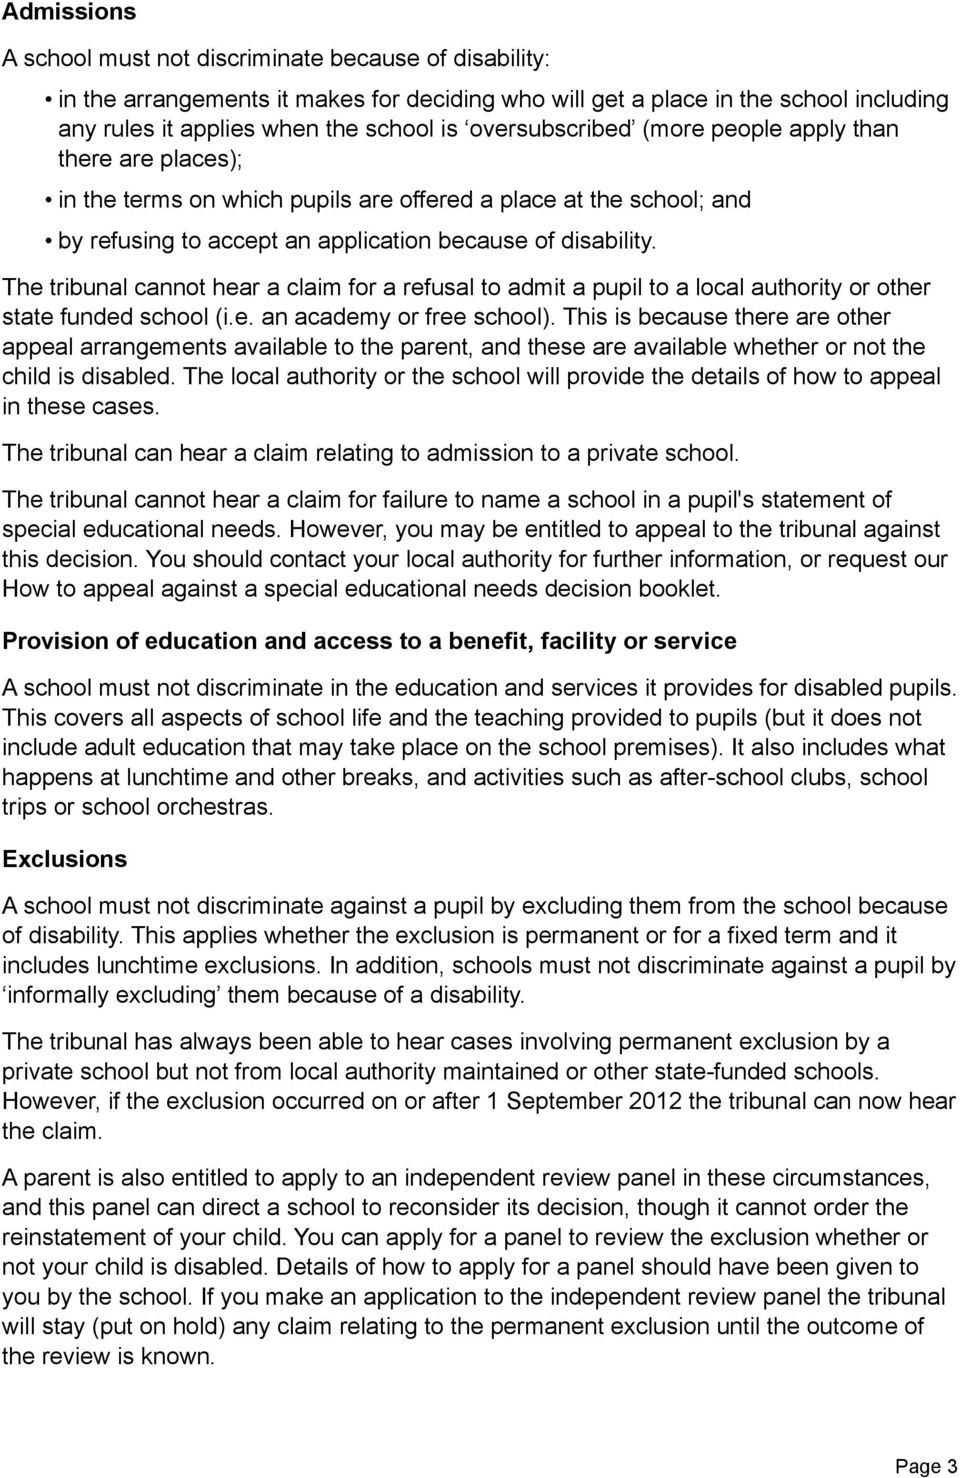 The tribunal cannot hear a claim for a refusal to admit a pupil to a local authority or other state funded school (i.e. an academy or free school).